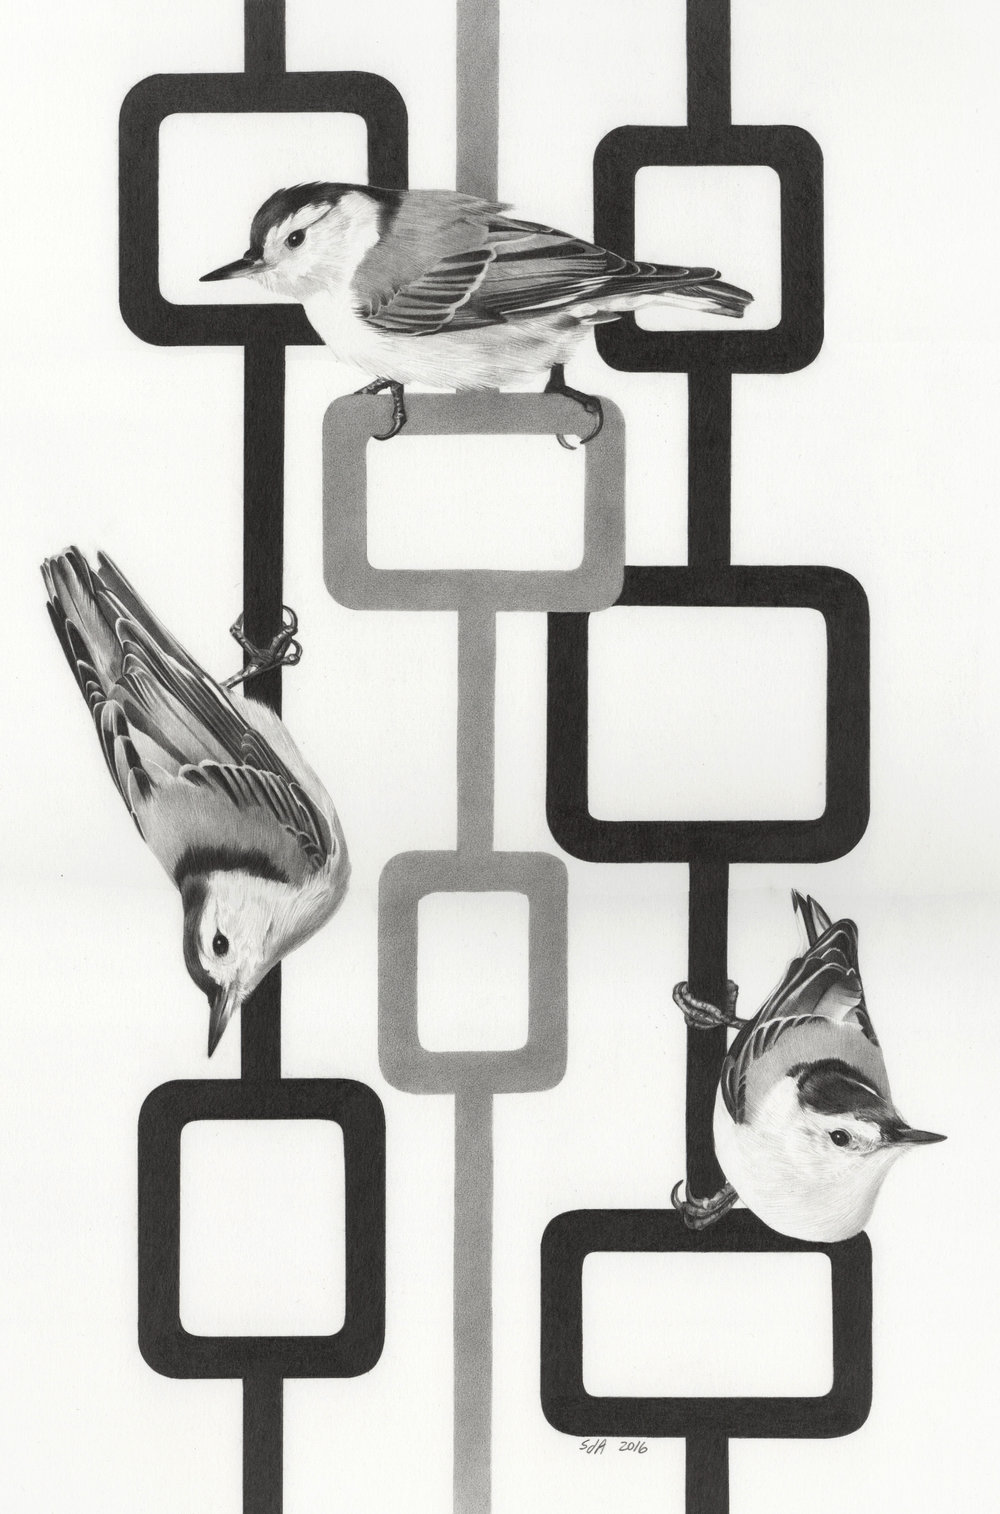 33 - Mod Nuthatches, 14 x 9.25, Graphite